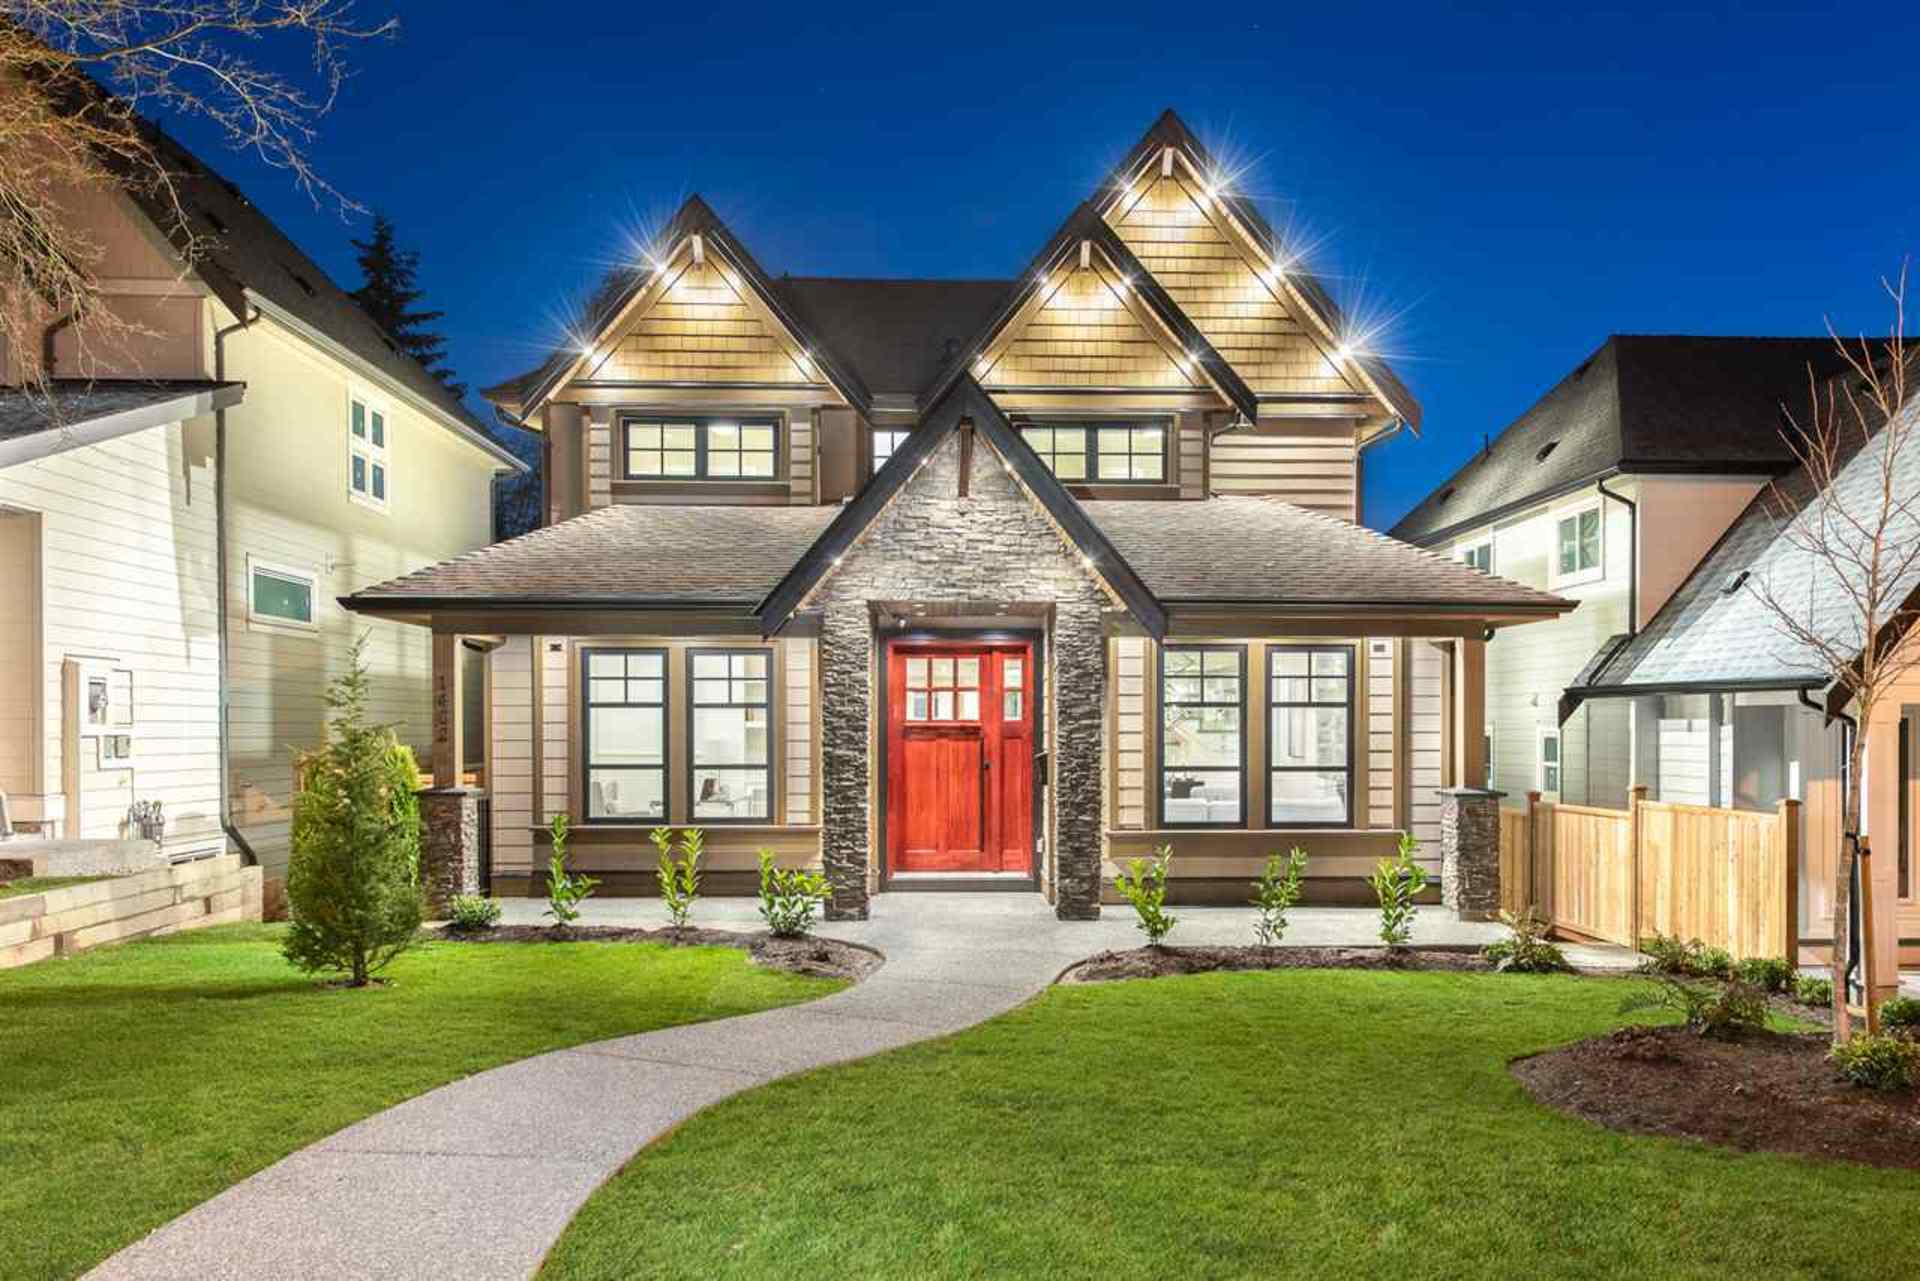 1402-haversley-avenue-central-coquitlam-coquitlam-01 at